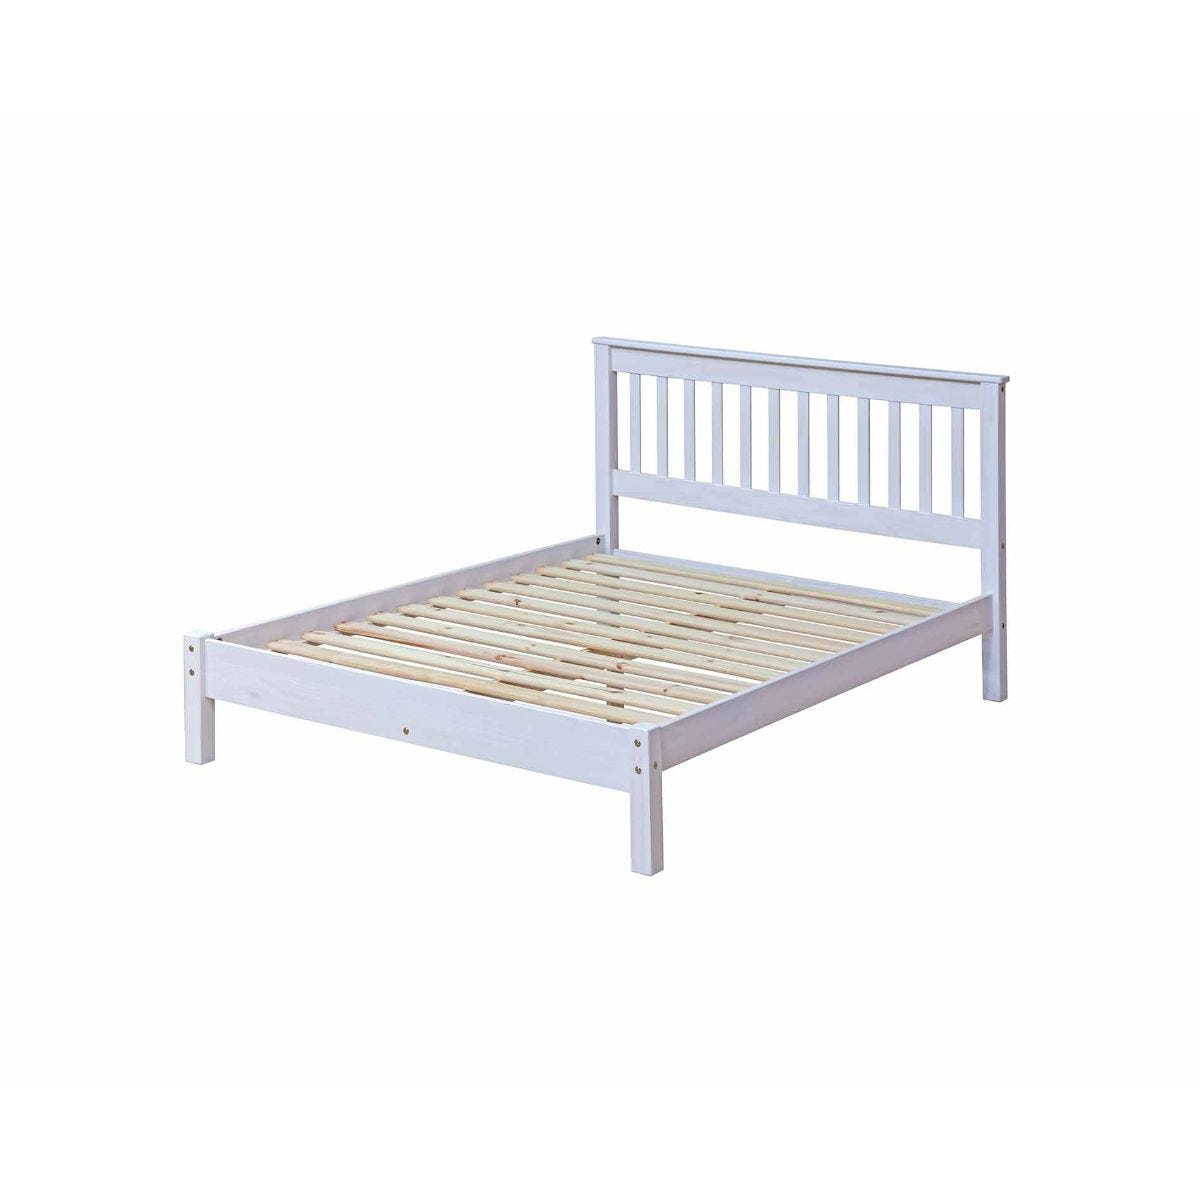 Corona White Wooden Slatted Double Bed Frame 4ft 6, White